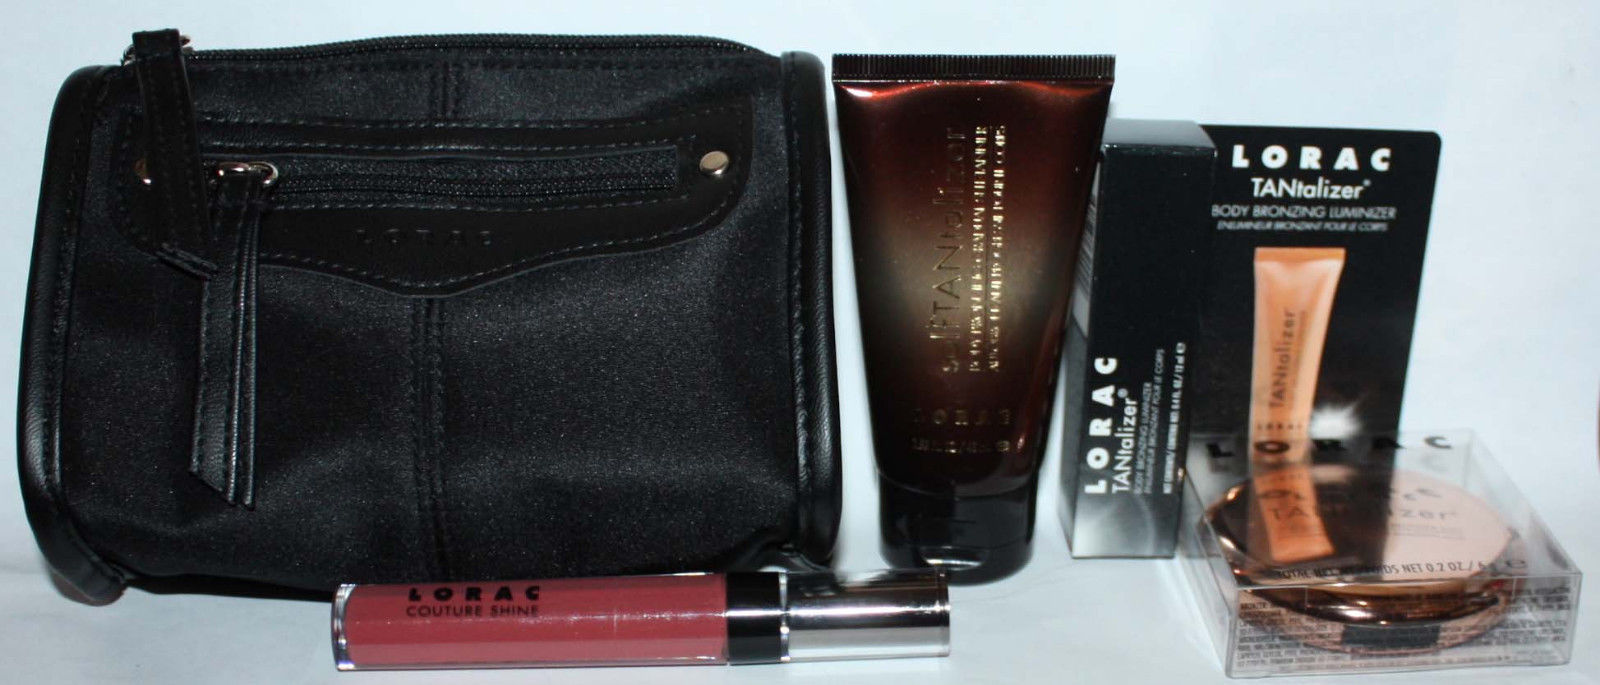 4 Pc LORAC Sun-Kissed Glow Tantalizer Collection + Makeup Bag 09558